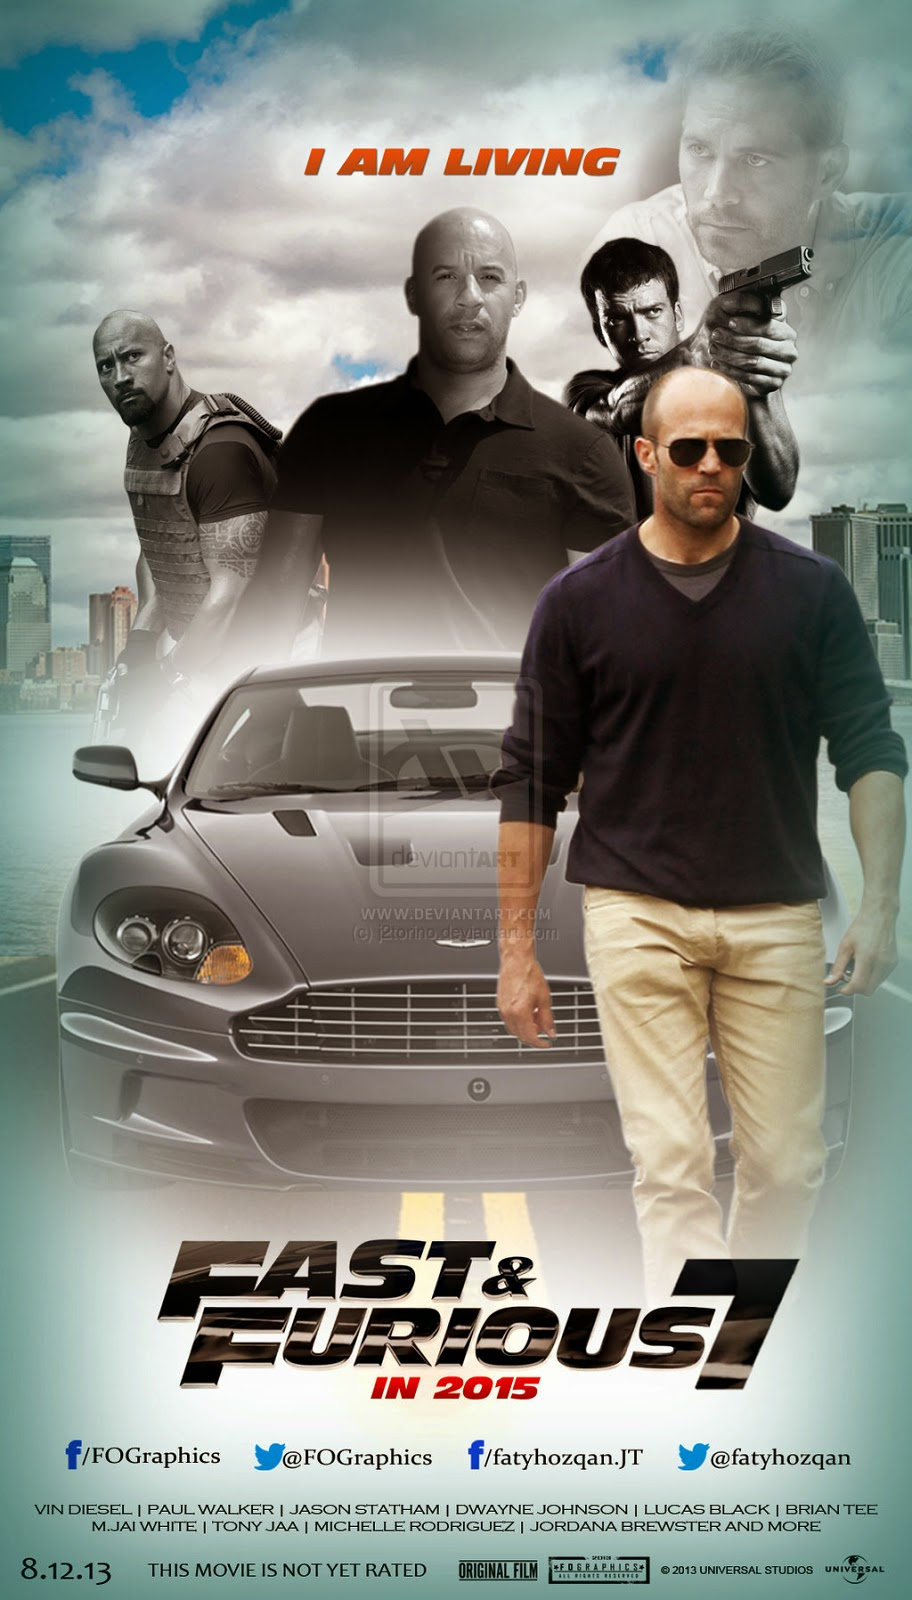 fast and furious 7 full movie free online no download